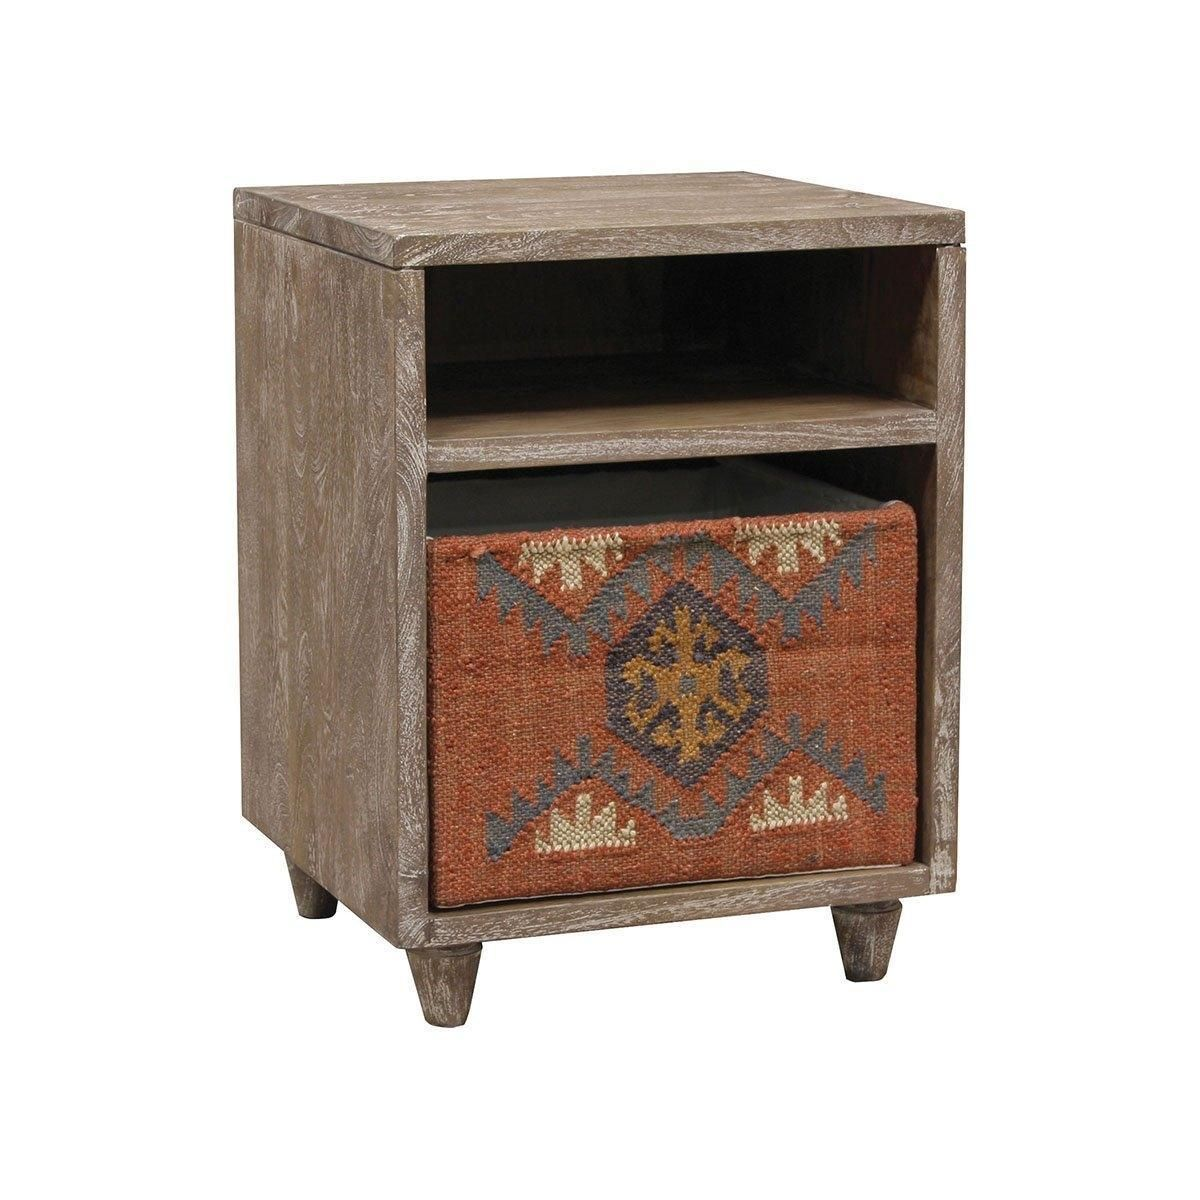 illanipi end table stein world products accent with baskets pier one furniture catalog narrow console ikea uttermost dice red cherry wood dining room italian home decor art deco